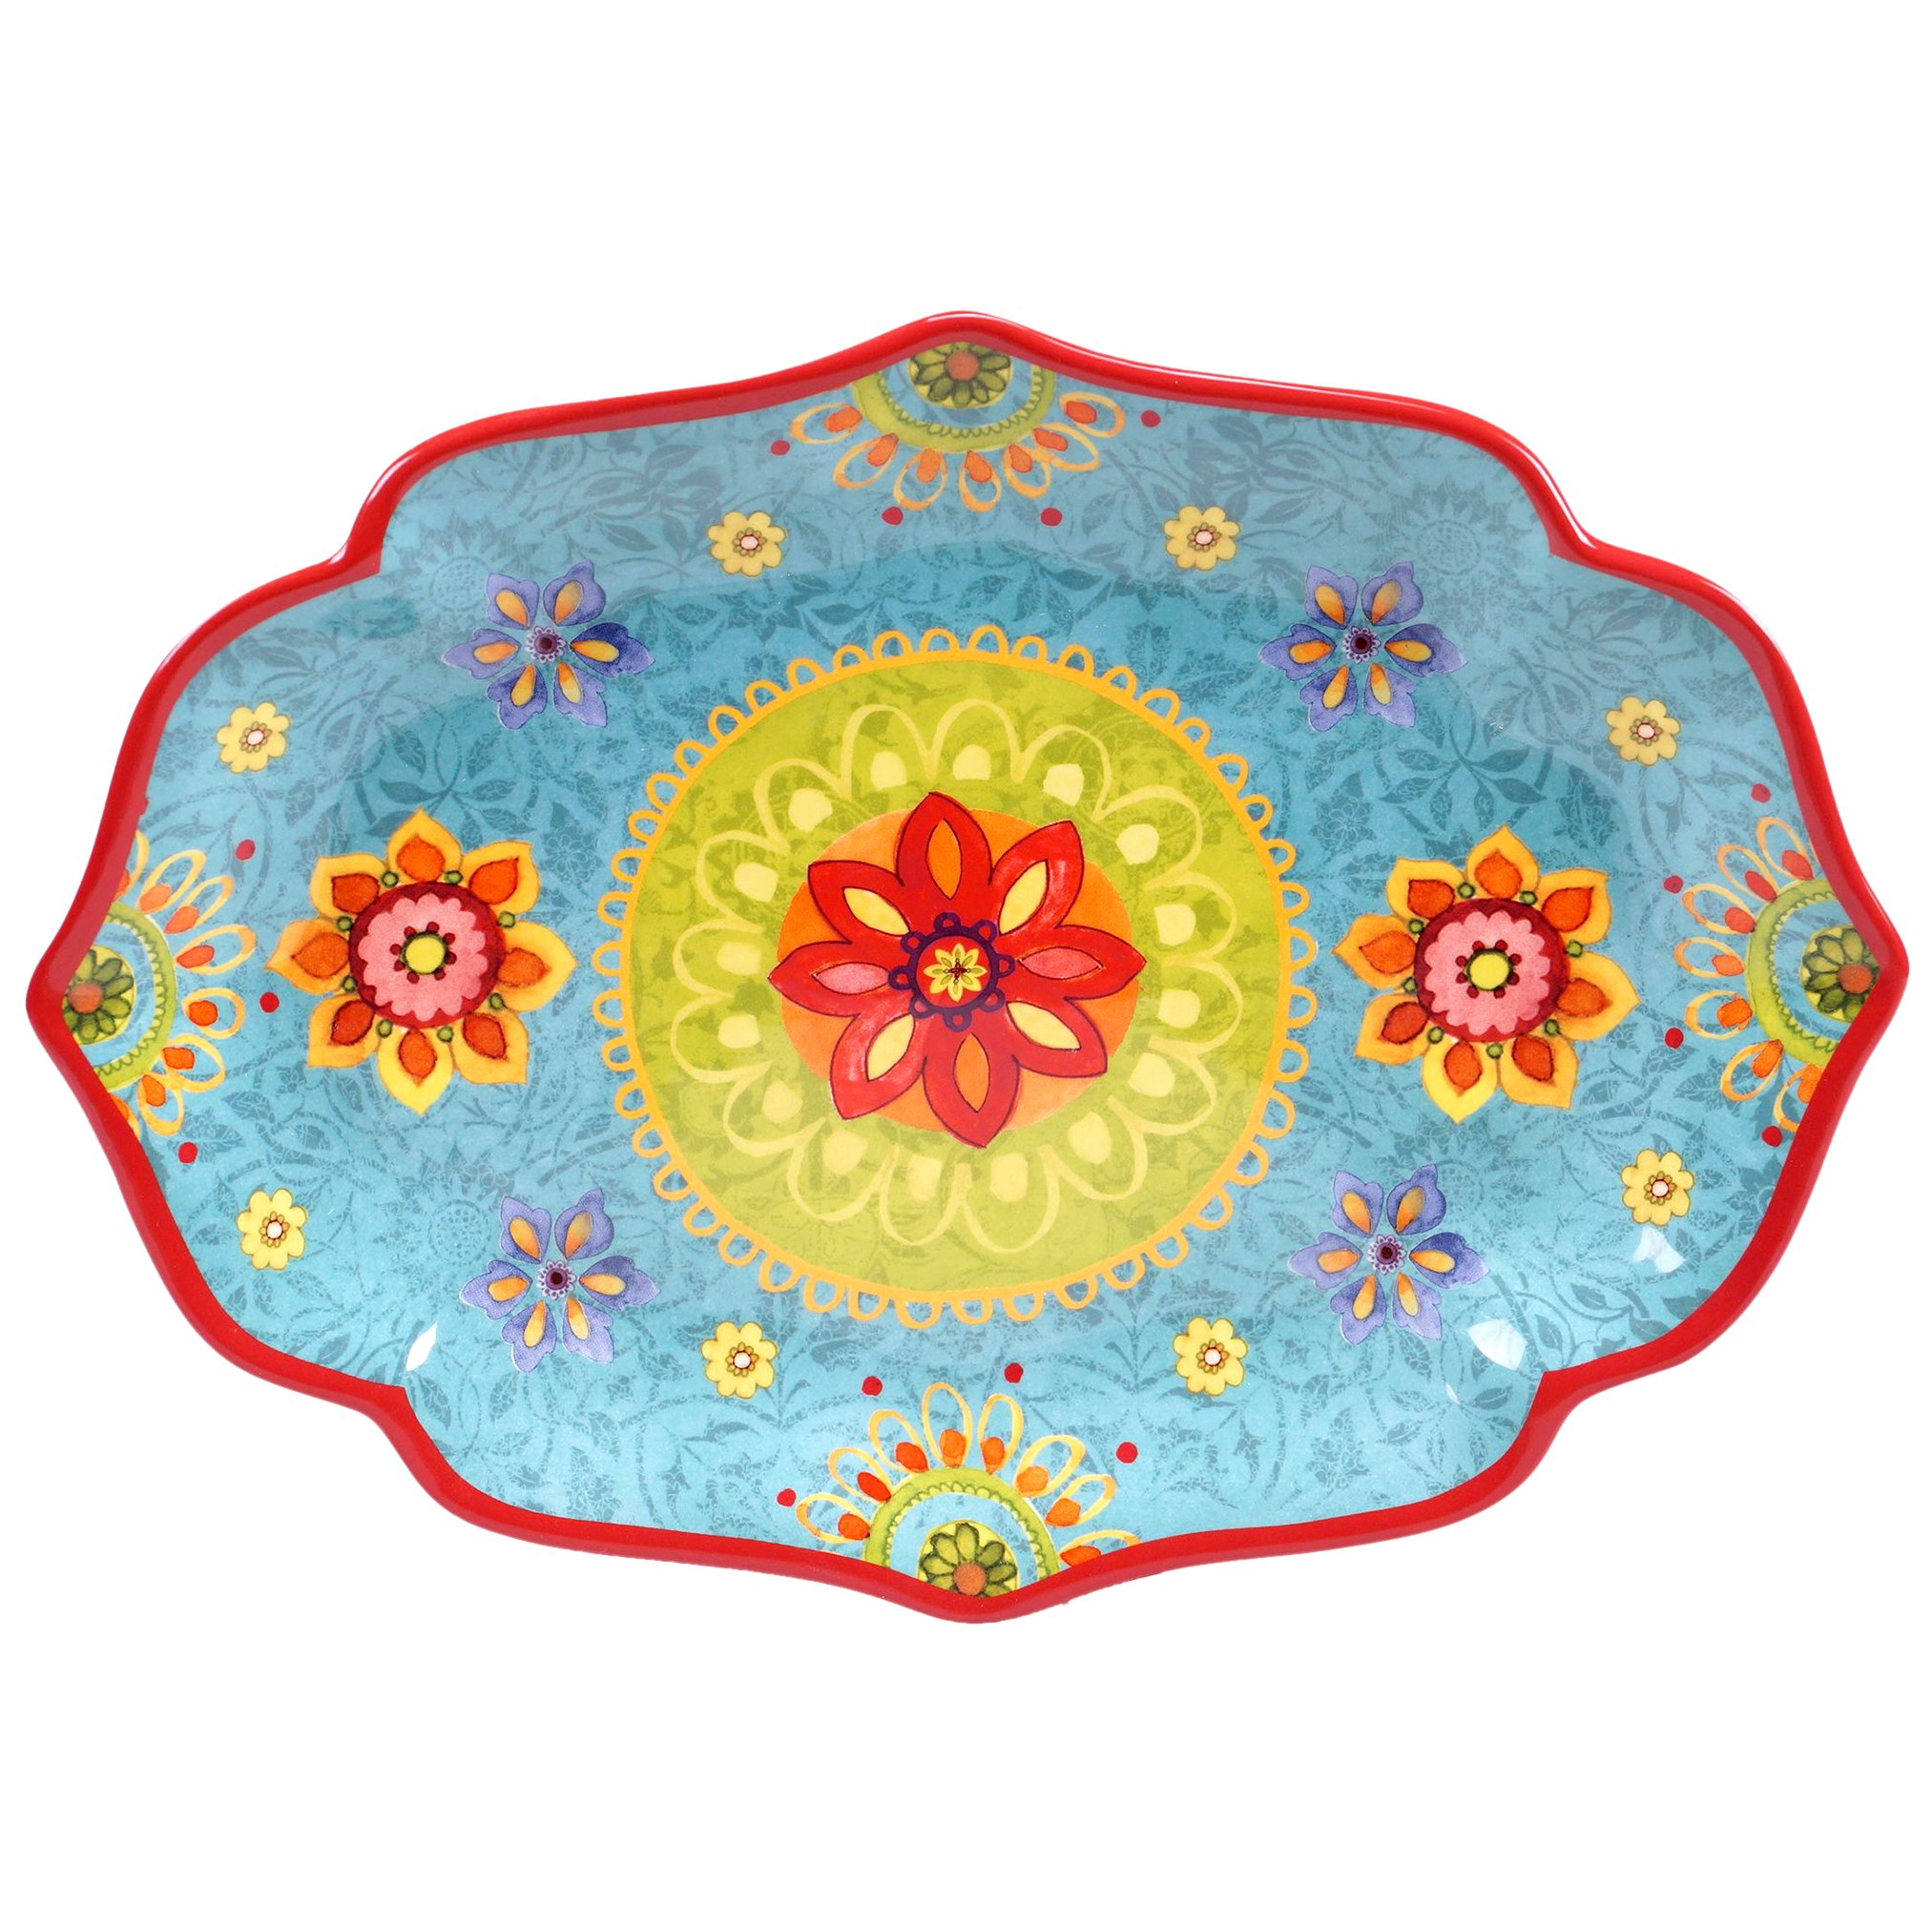 Certified International 22459 Tunisian Sunset Oval Platter, 16'' x 12'', Multicolor